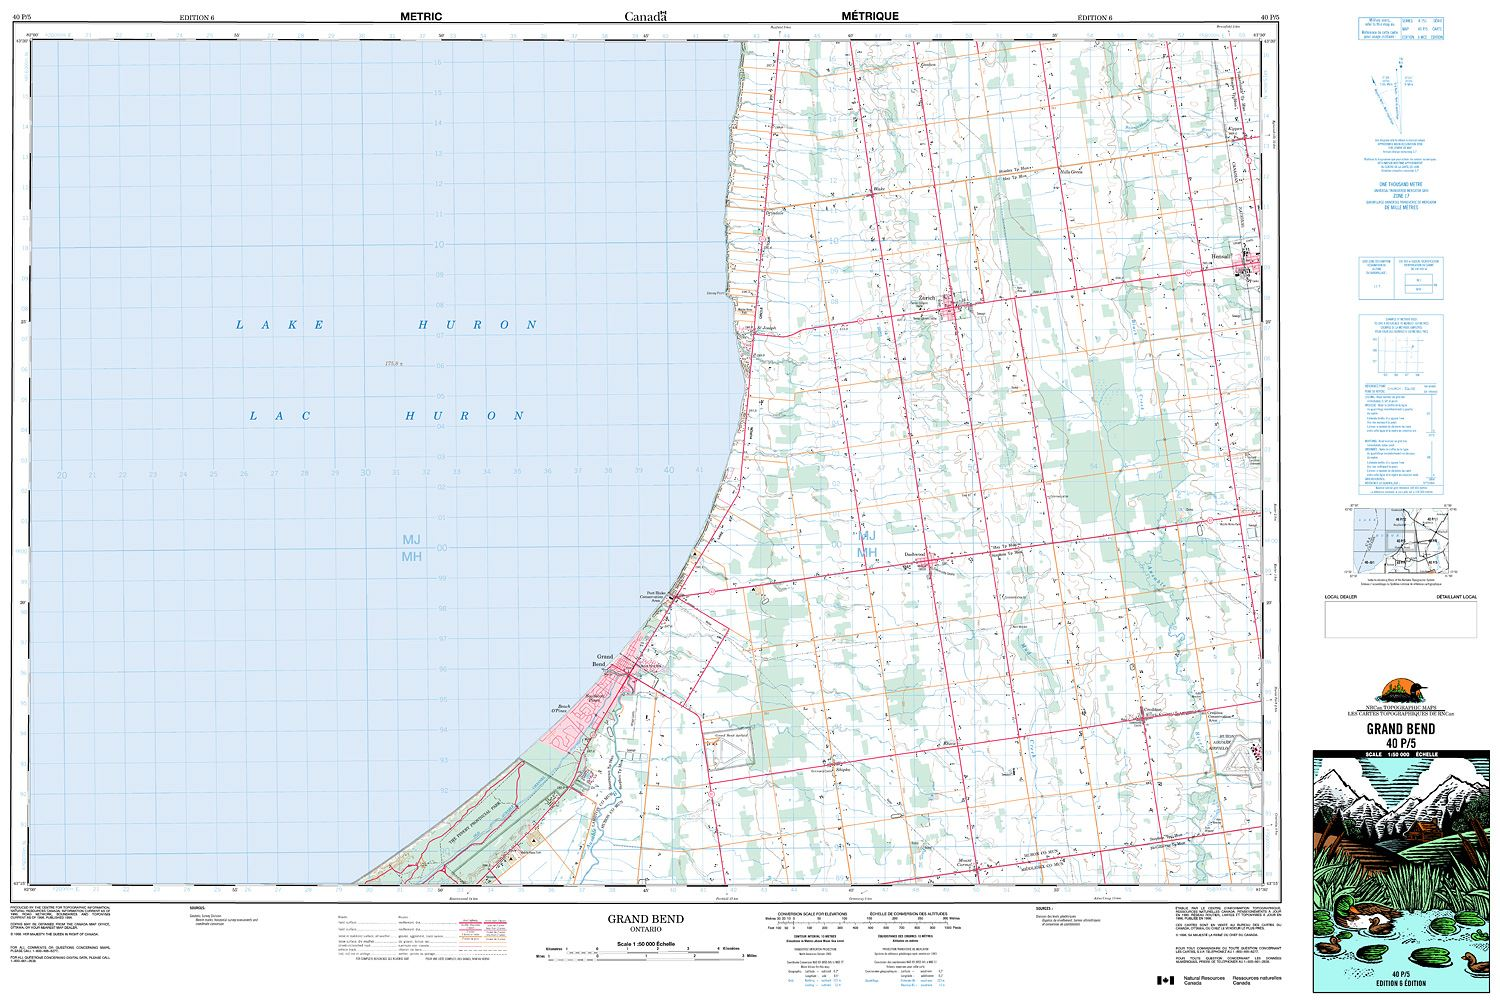 Grand Bend Map 040P05   GRAND BEND   Topographic Map